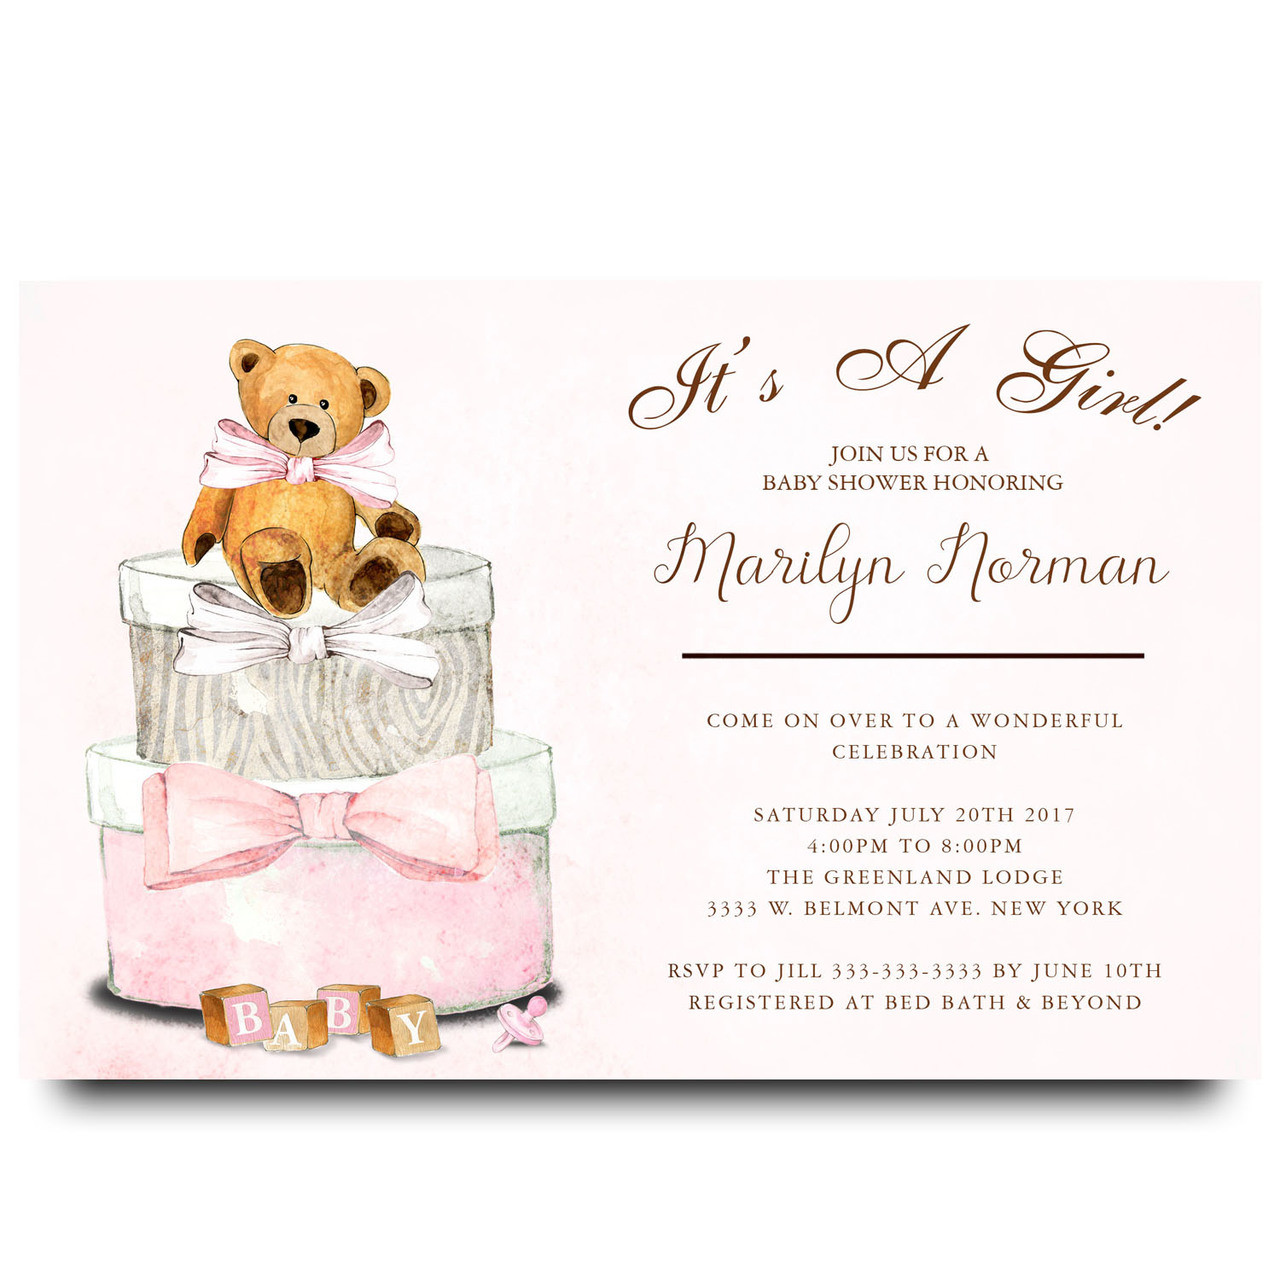 Baby shower invitation \